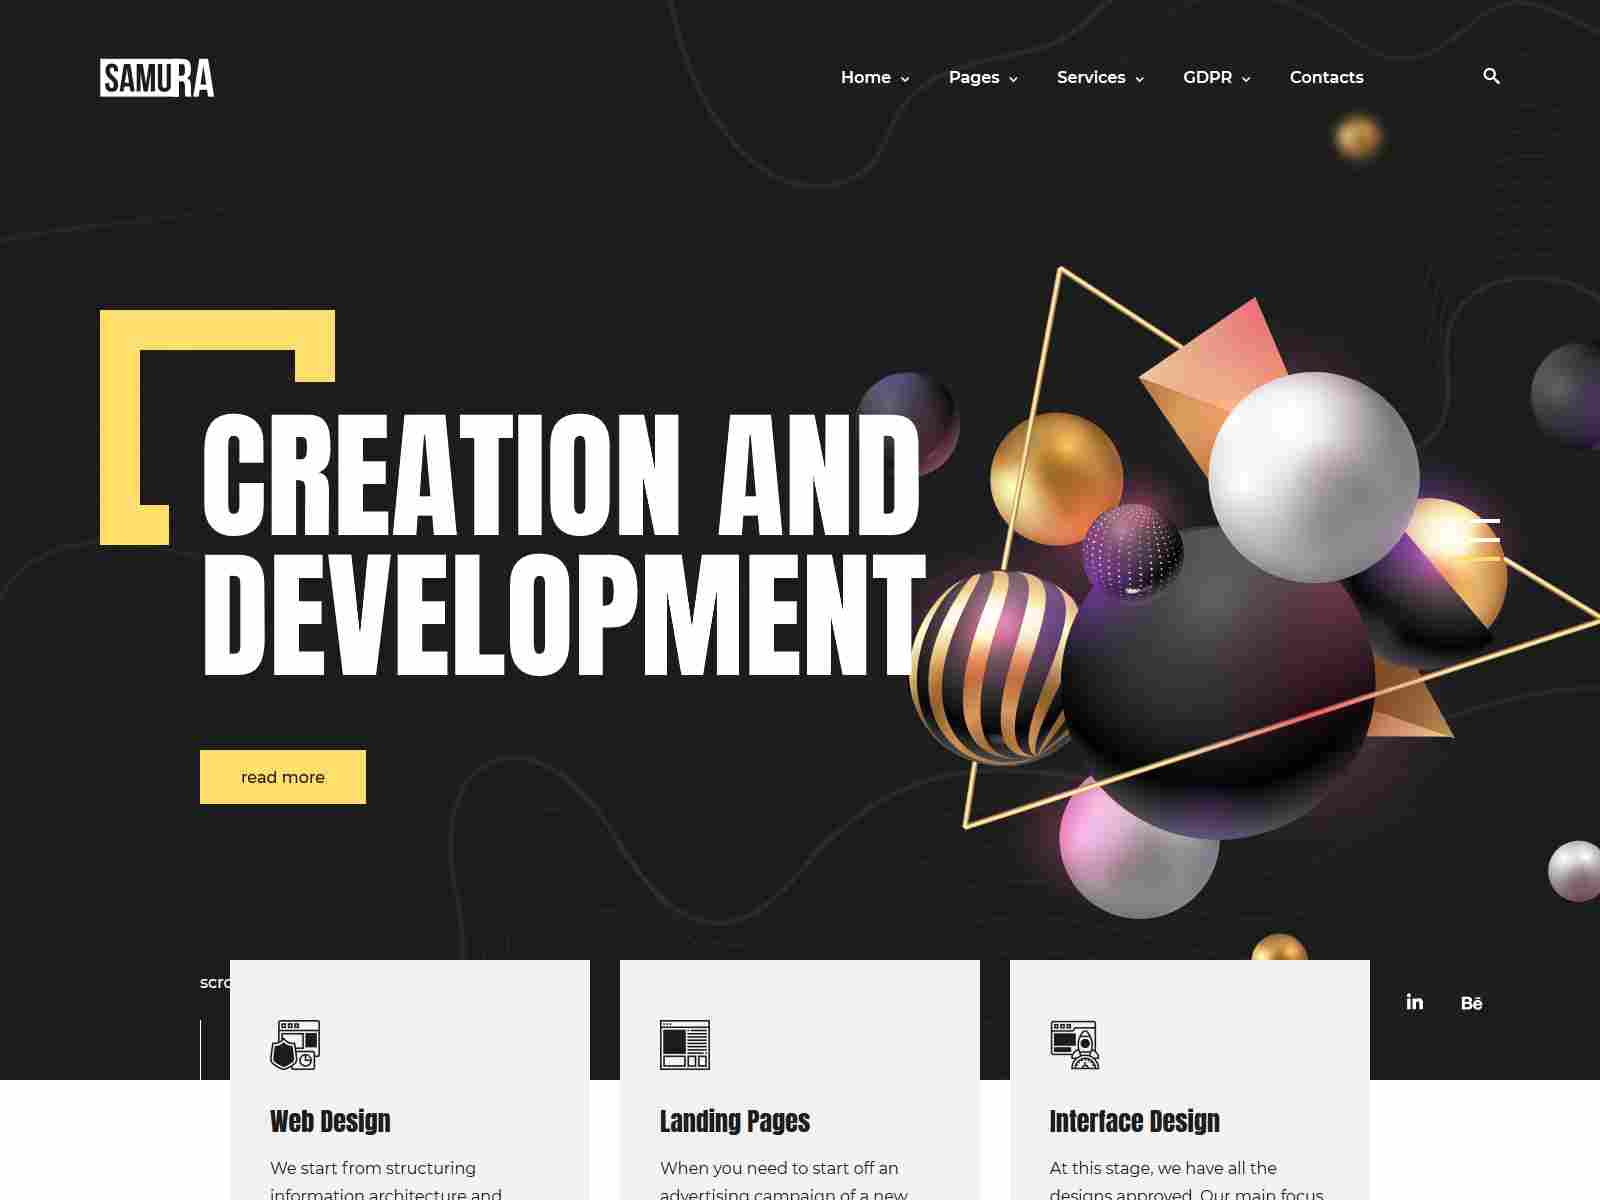 Samura – Creative Web Agency WordPress Theme